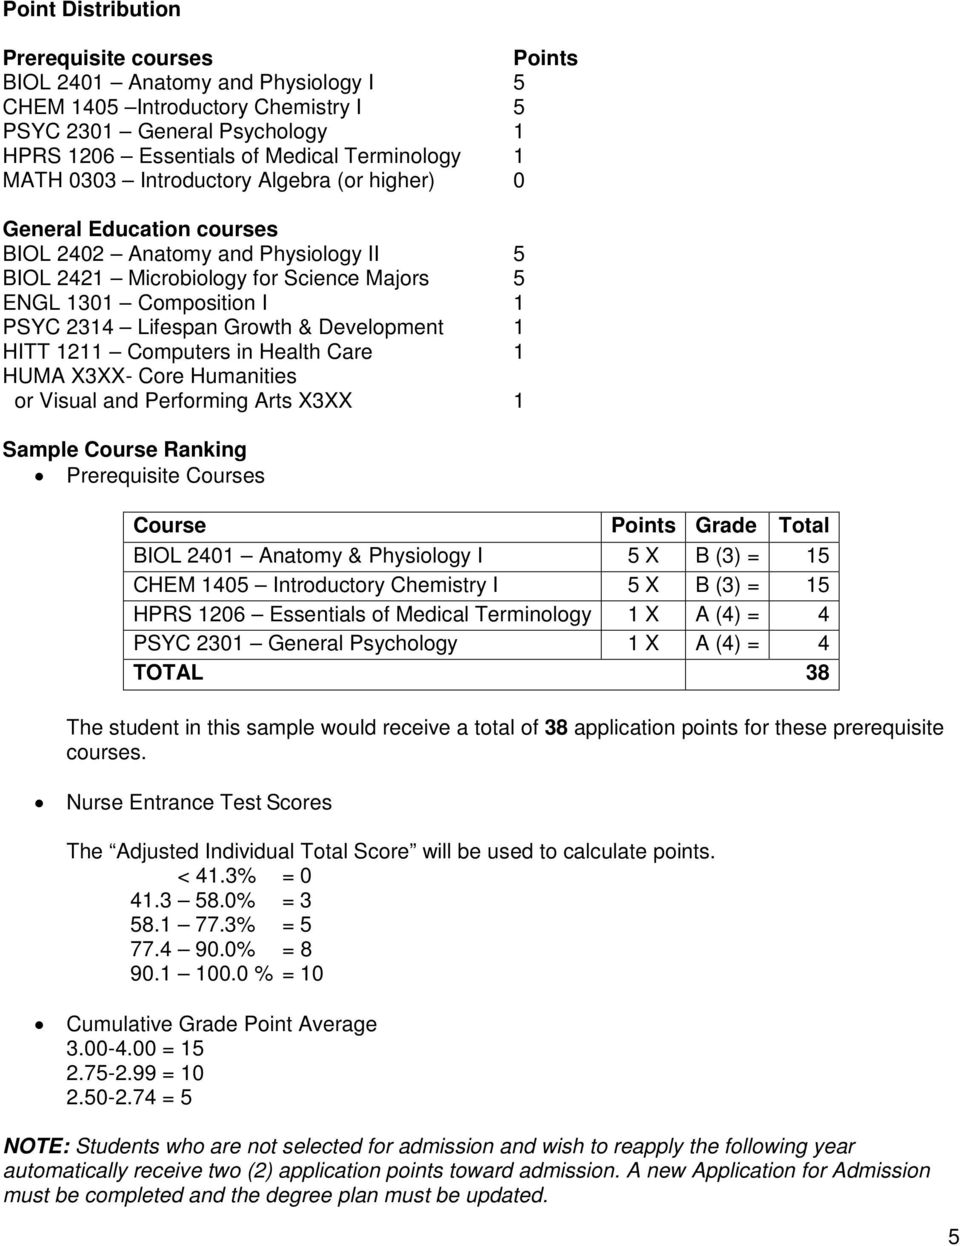 Growth & Development 1 HITT 1211 Computers in Health Care 1 HUMA X3XX- Core Humanities or Visual and Performing Arts X3XX 1 Sample Course Ranking Prerequisite Courses Course Points Grade Total BIOL